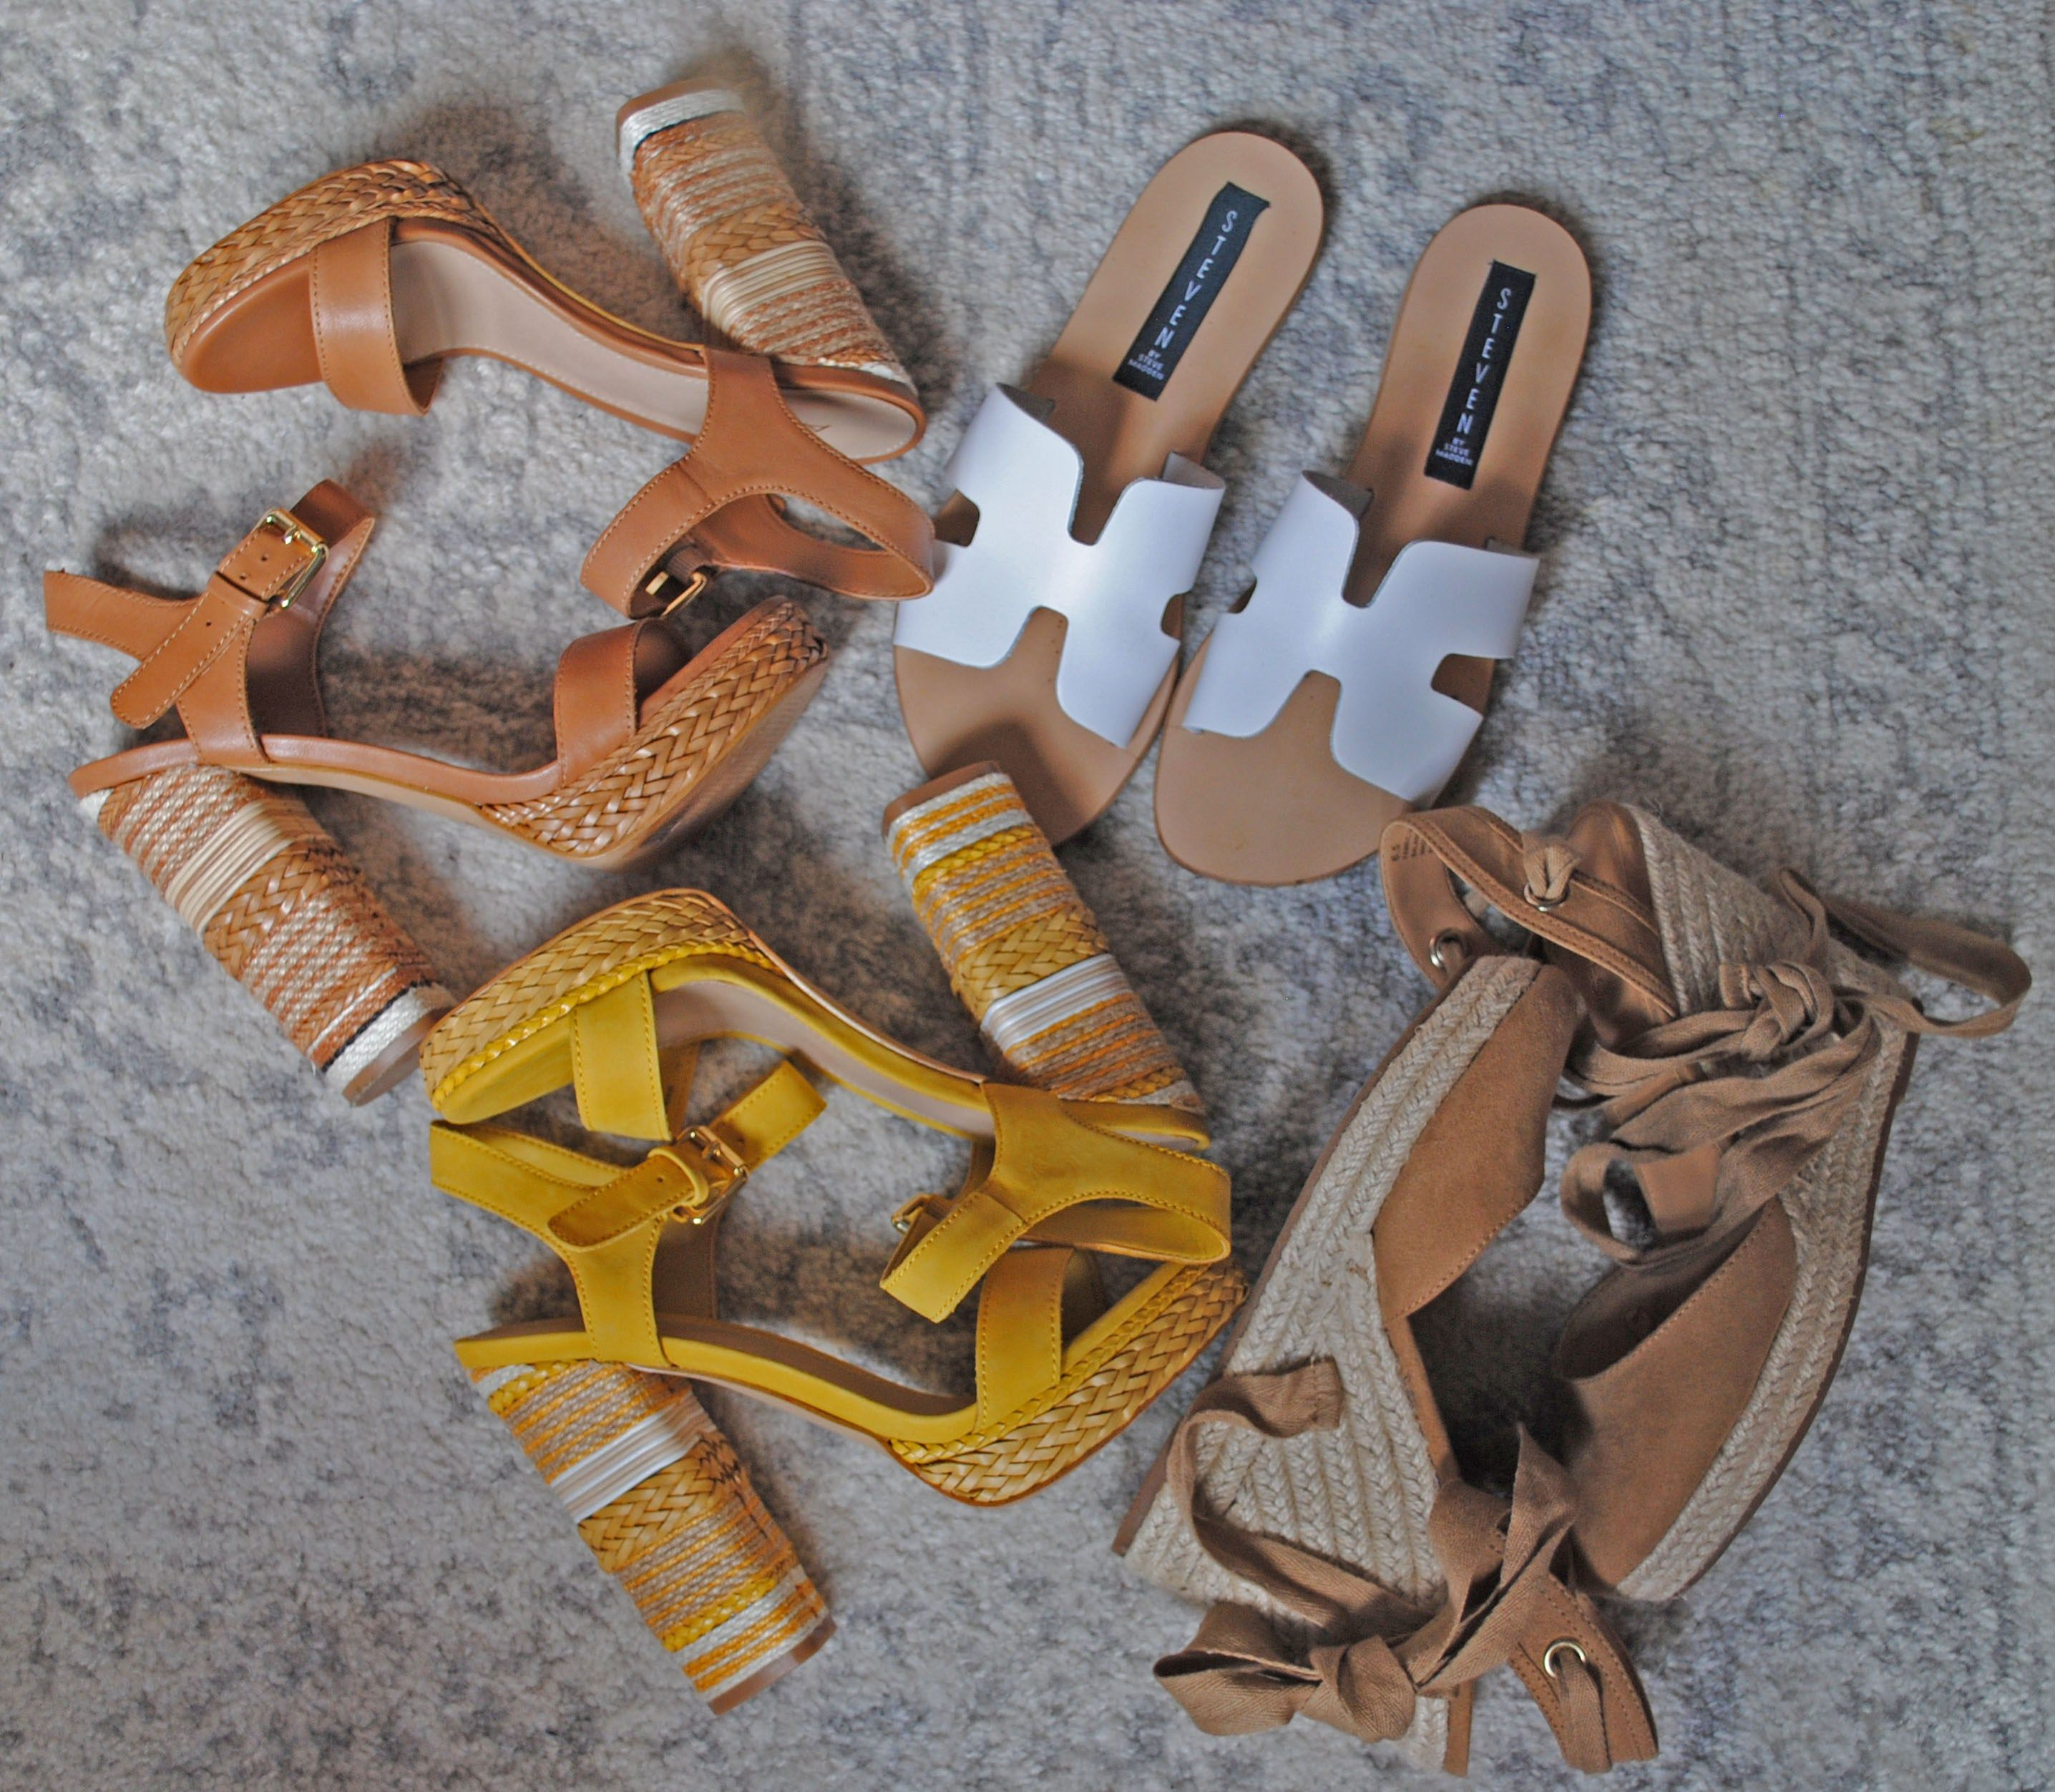 Shoes, Summer Sandals, Chunky Heels, Espadrilles Pop Of Color Shoes